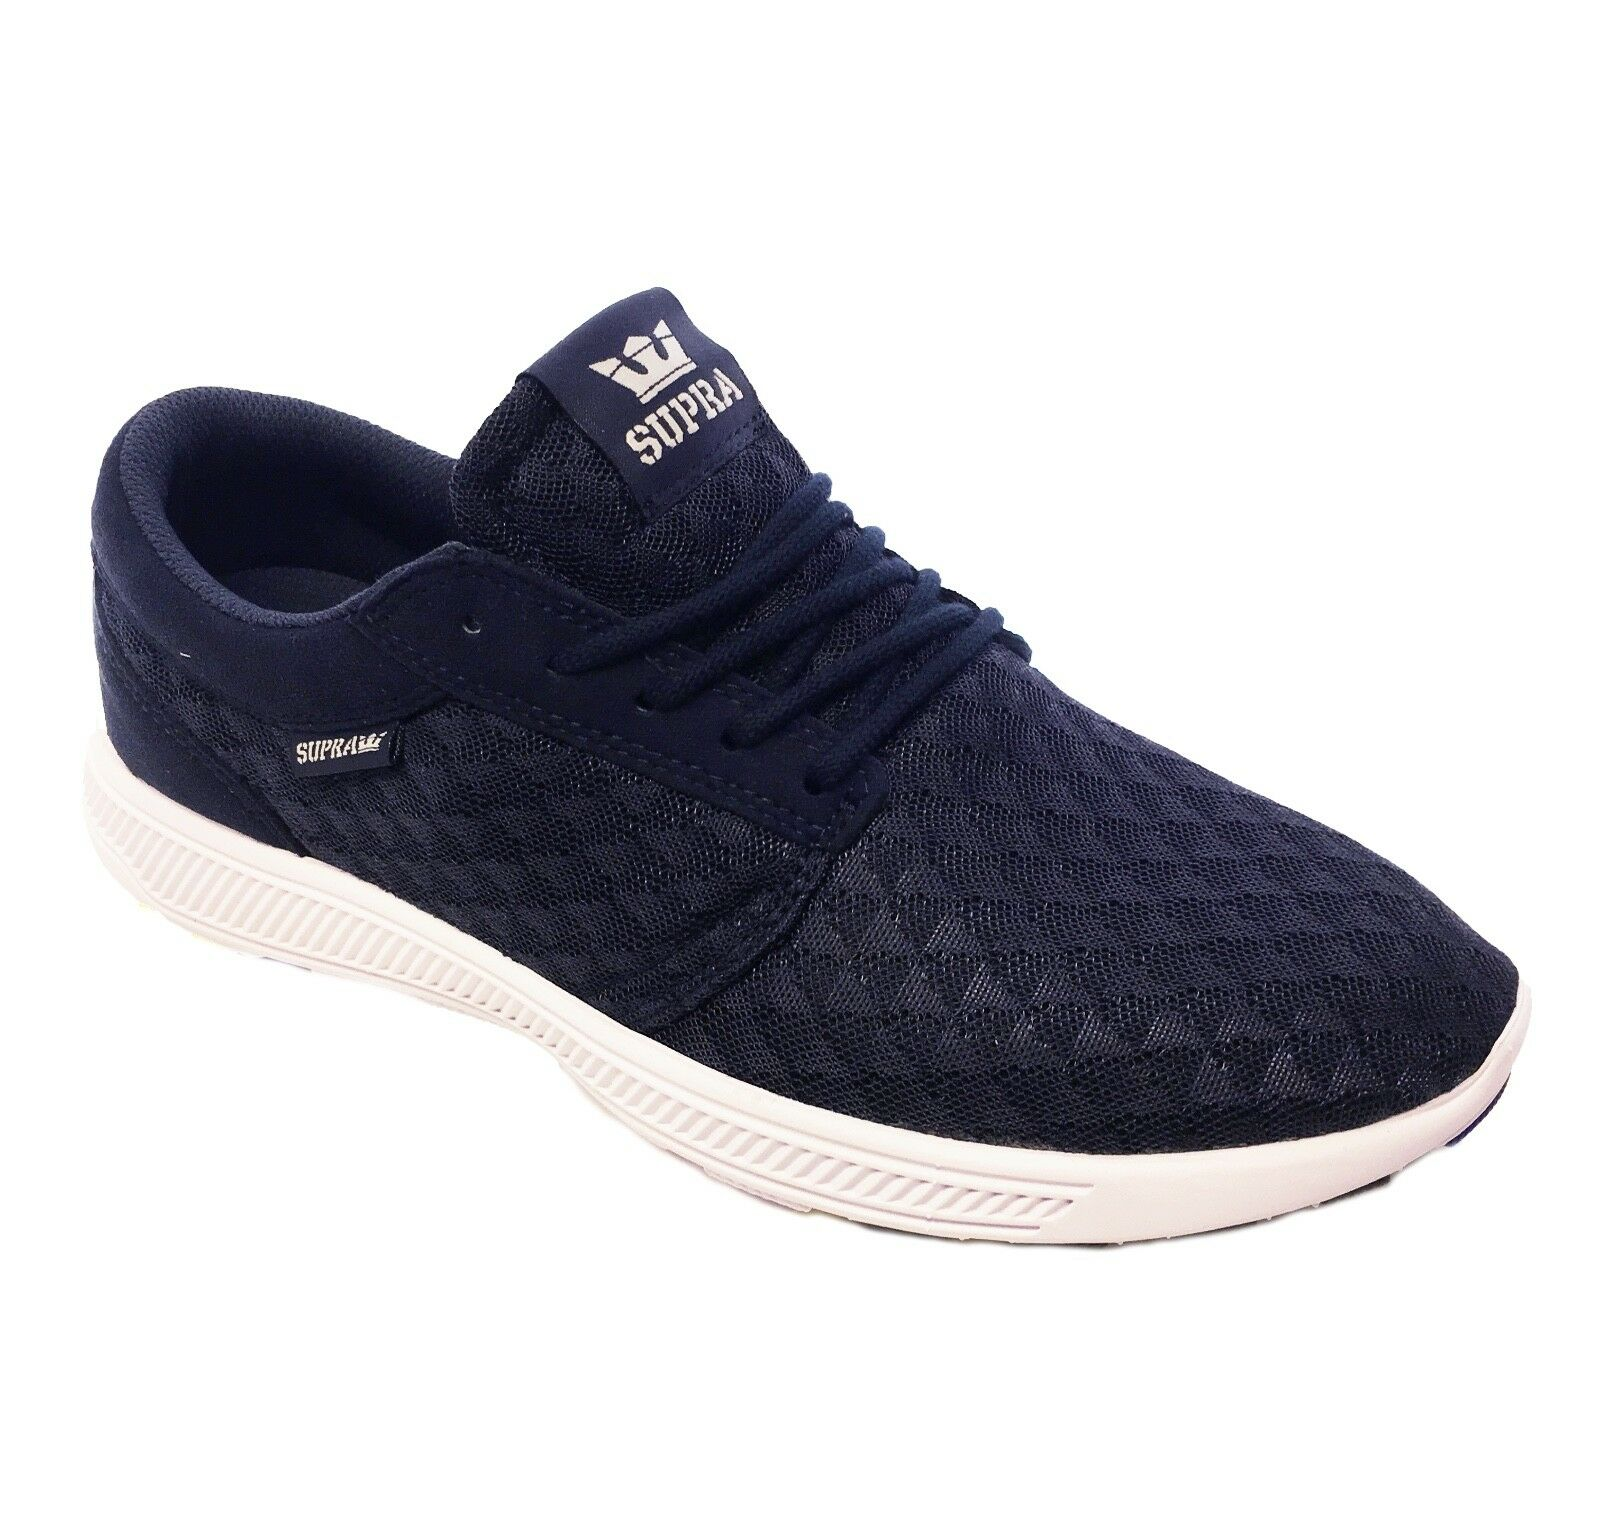 SUPRA Hammer Run Lightweight Mesh Trainer Sporty Gym Sneaker shoes Navy White